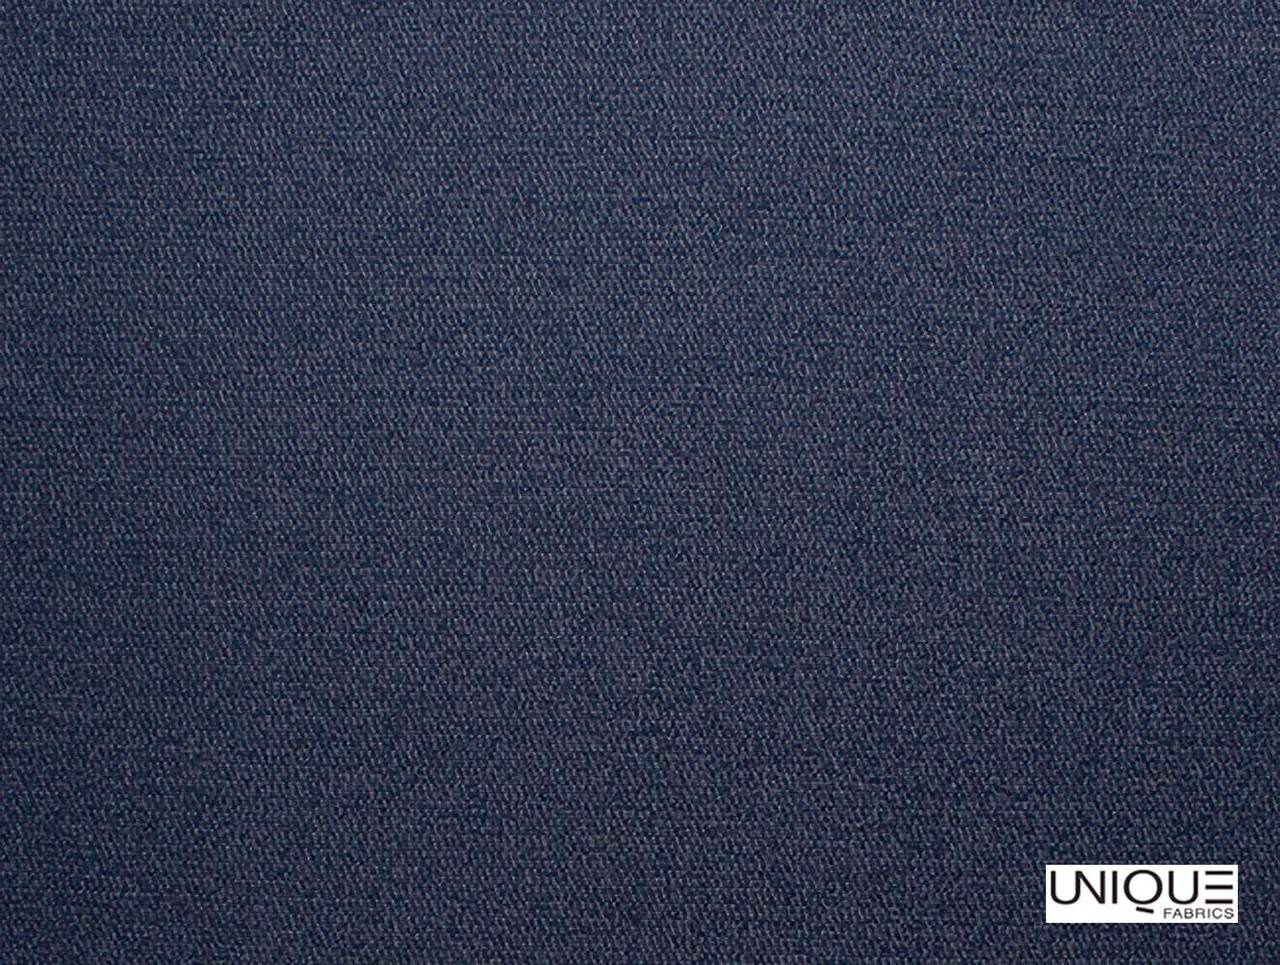 Unique Fabrics Westminster Balfour - Ink  | Upholstery Fabric - Blue, Natural, Plain, Natural Fibre, Standard Width